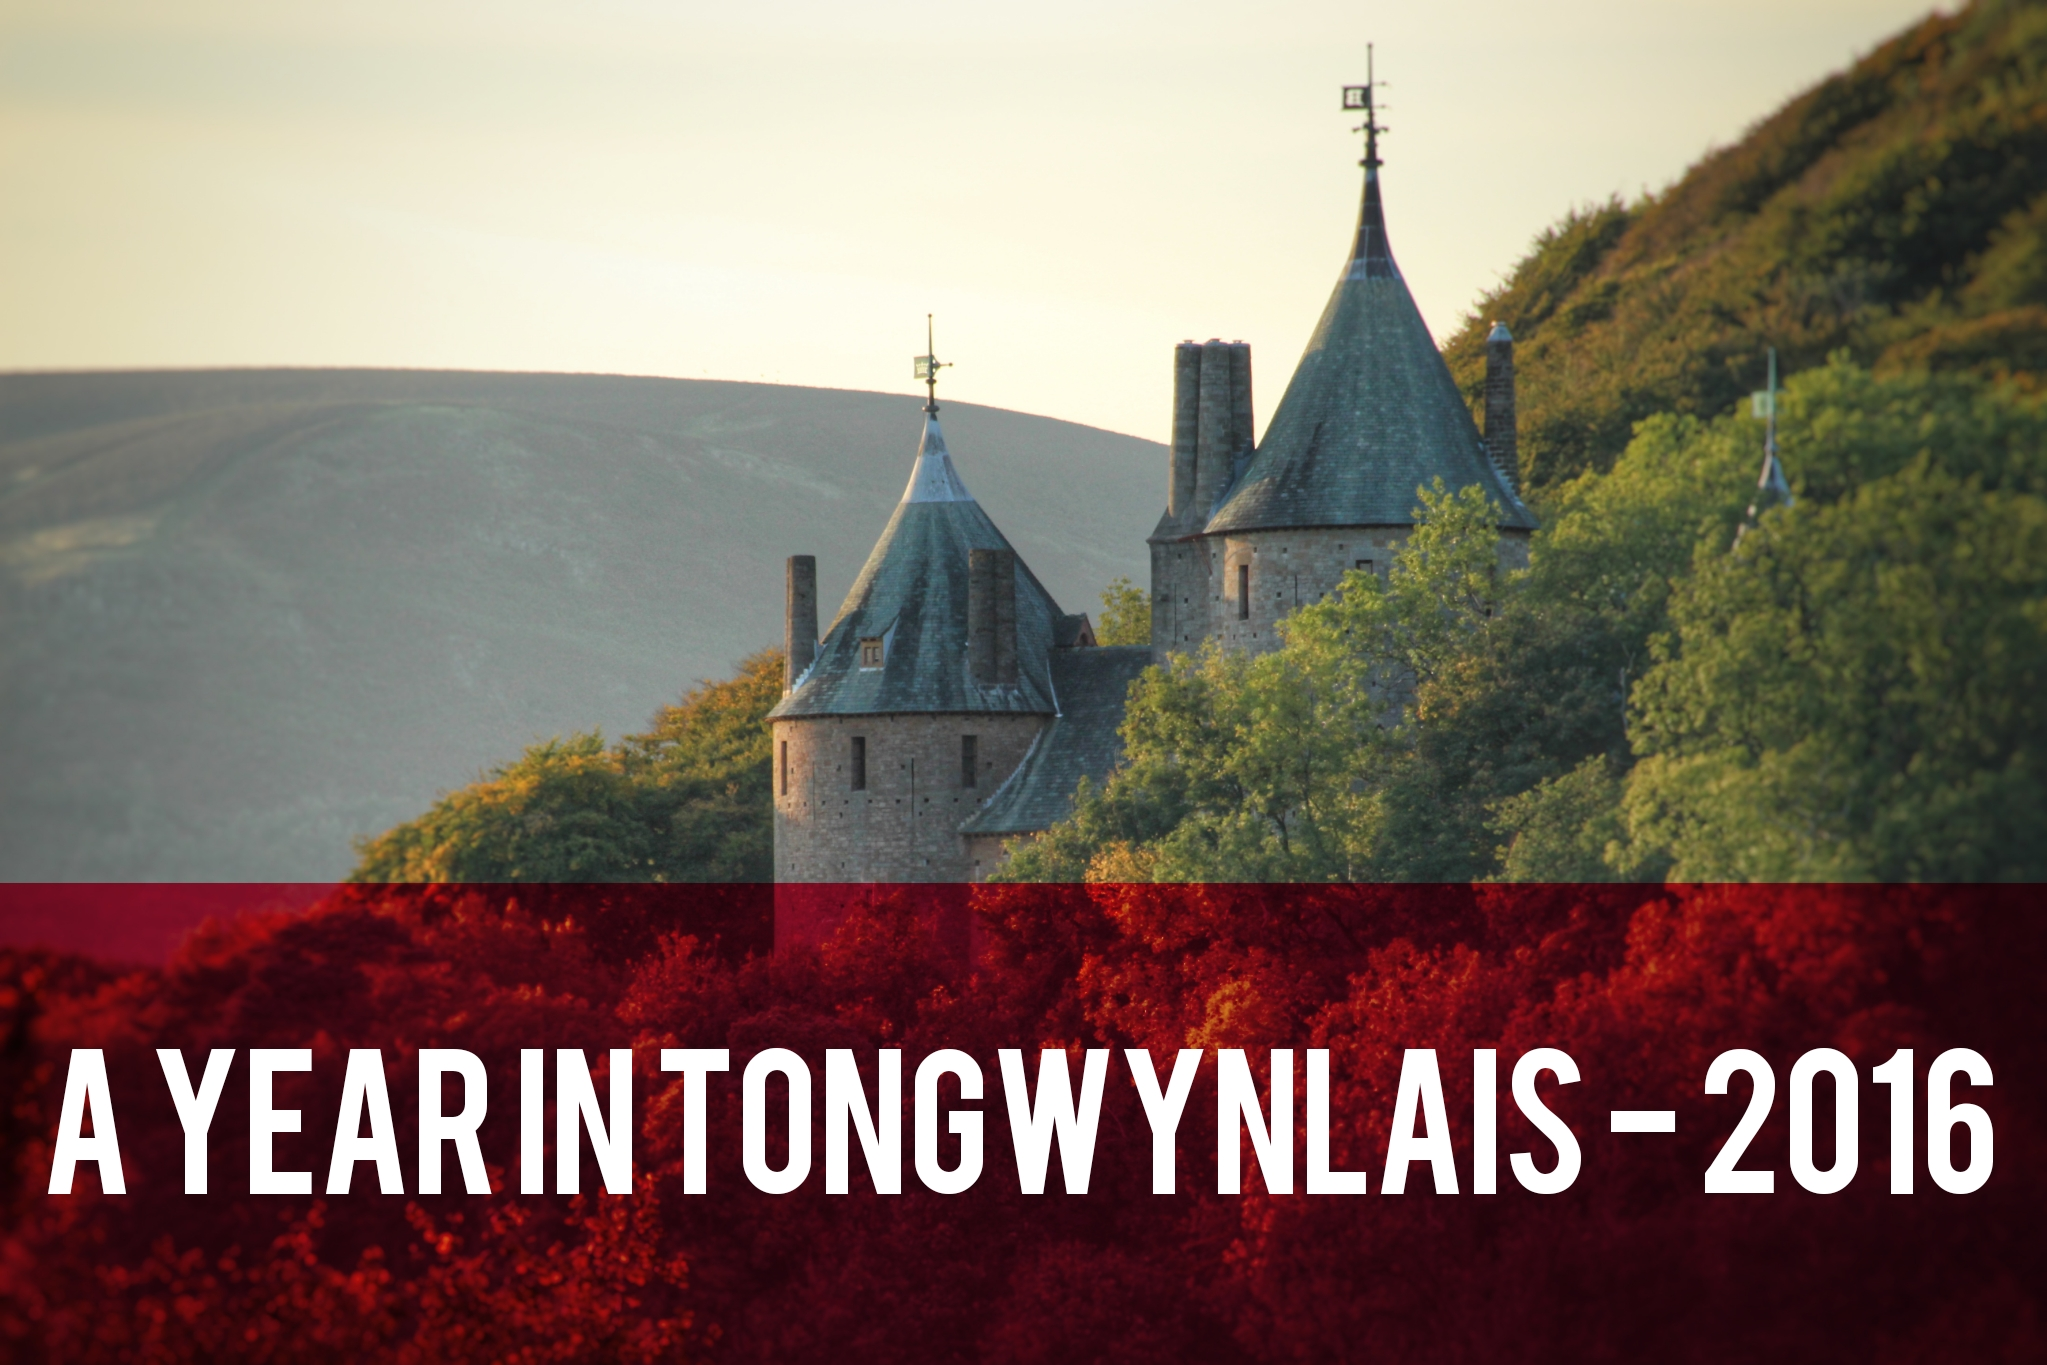 A Year in Tongwynlais 2016 header